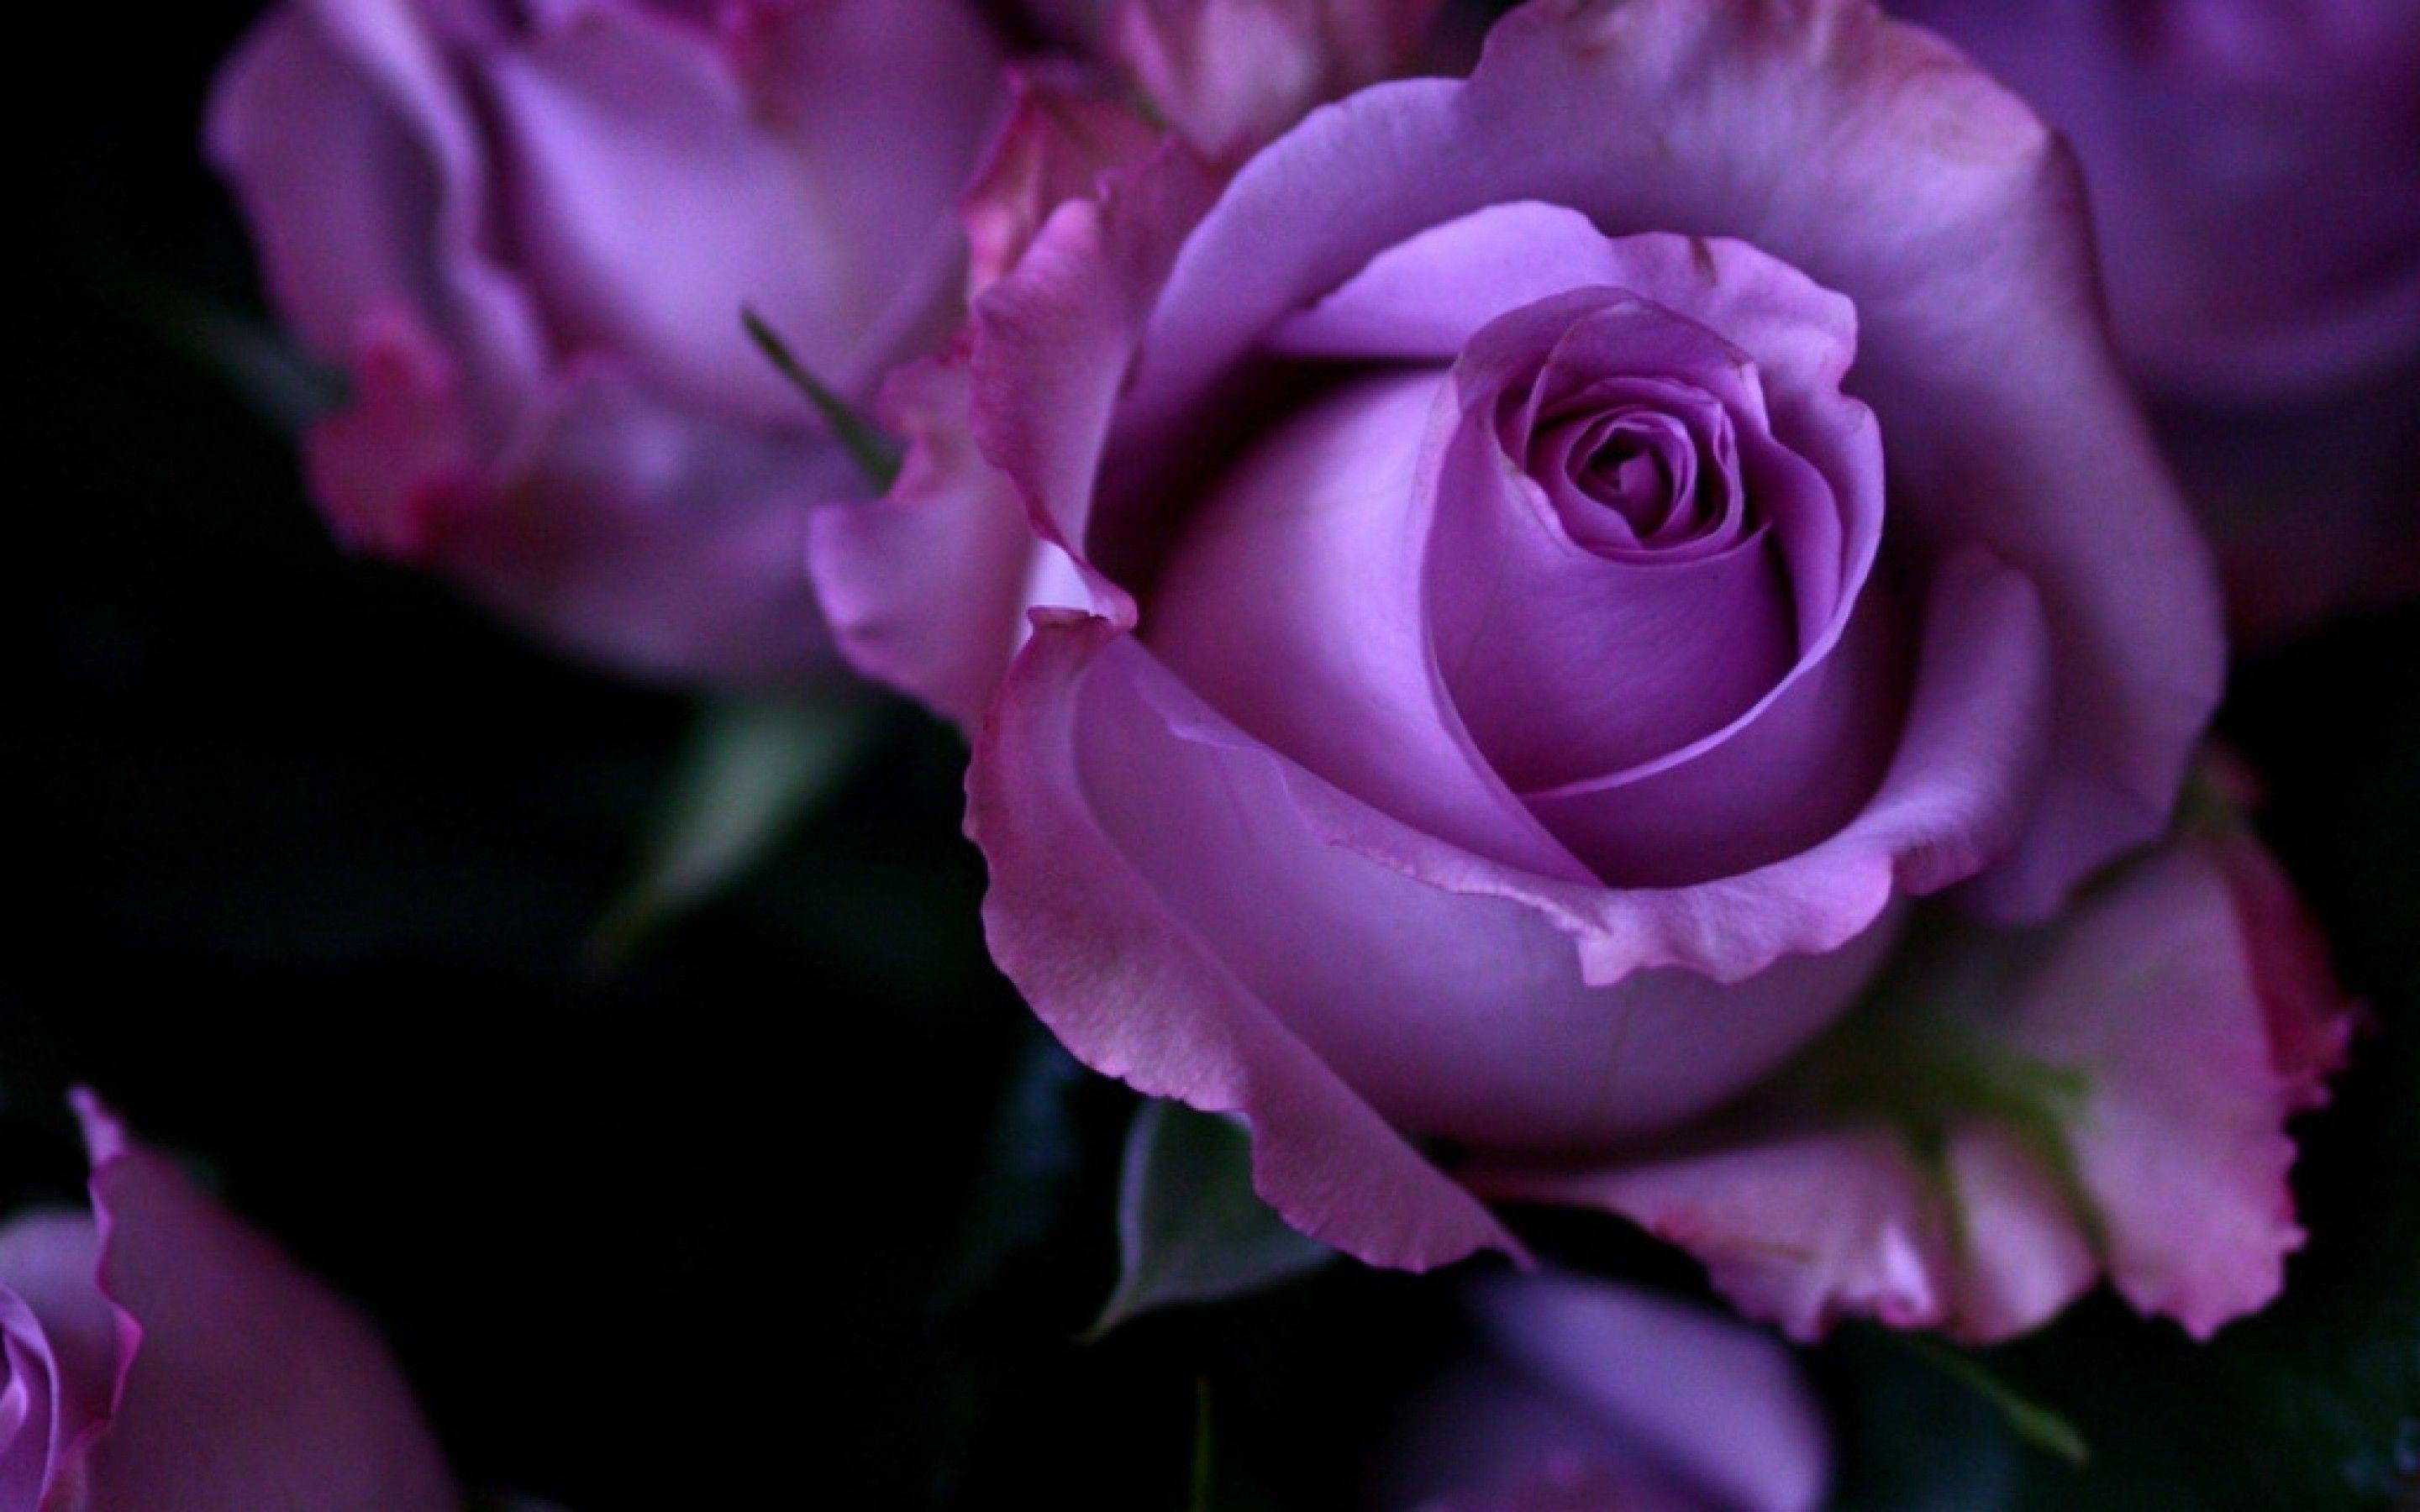 Res: 2880x1800, Purple Rose Wallpapers - Full HD wallpaper search